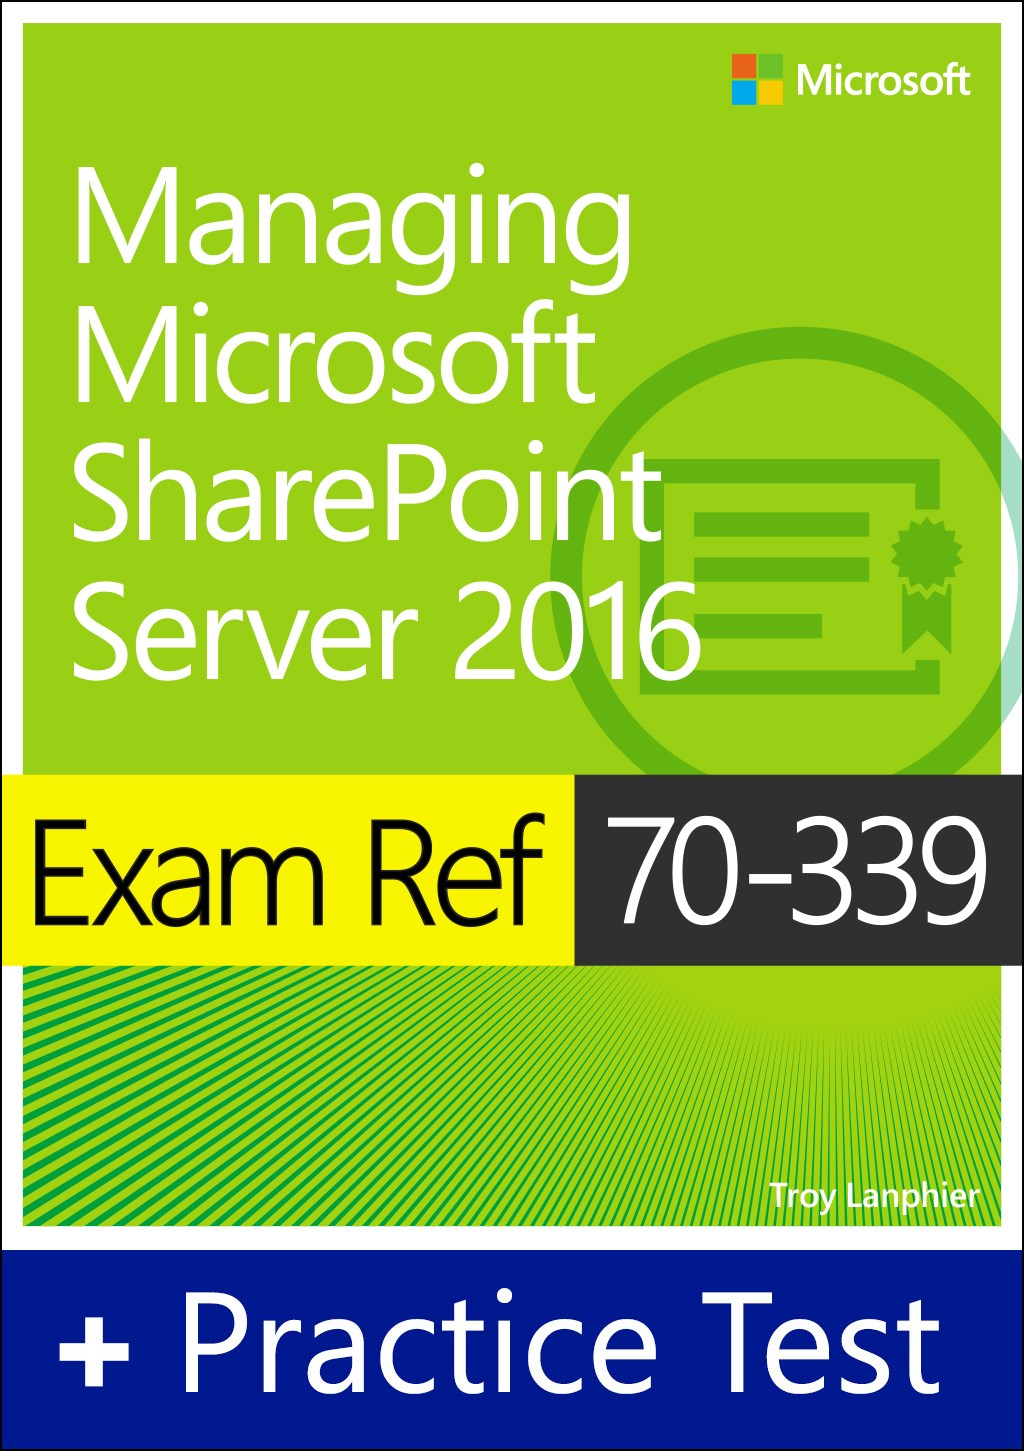 Exam Ref 70-339 Managing Microsoft SharePoint Server 2016 with Practice Test